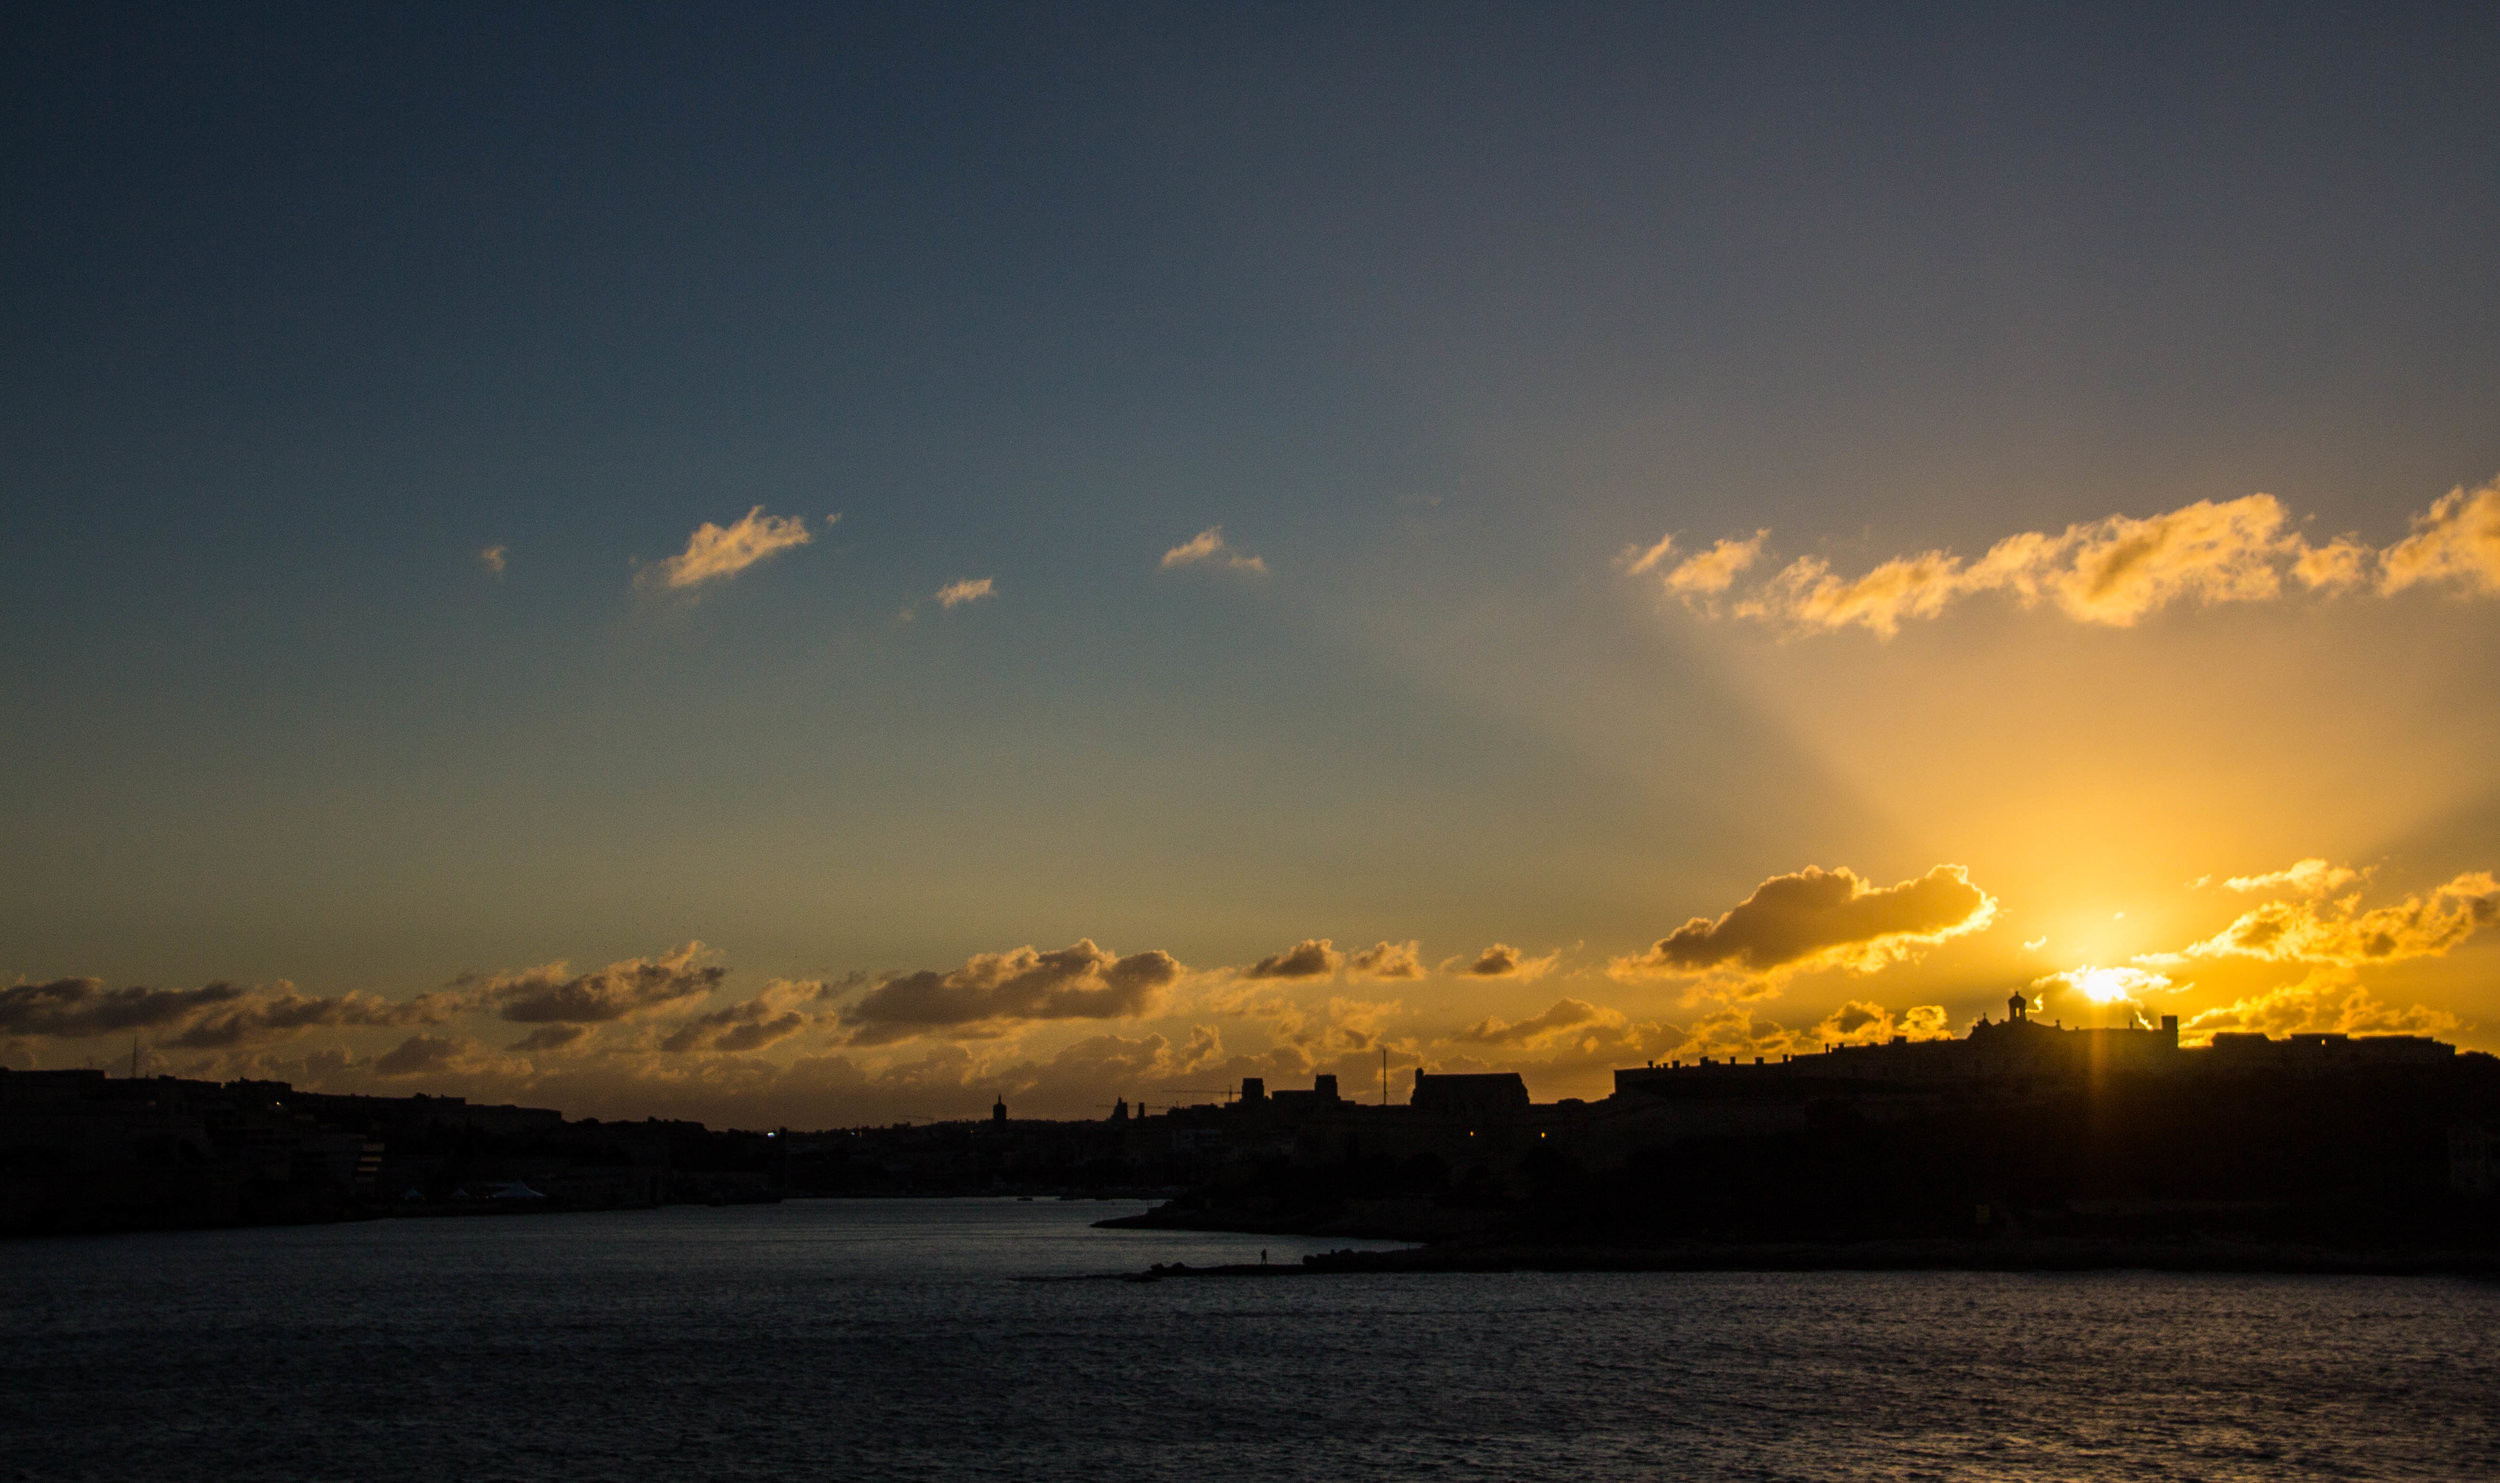 valletta-sliema-sunset-photography-27.jpg